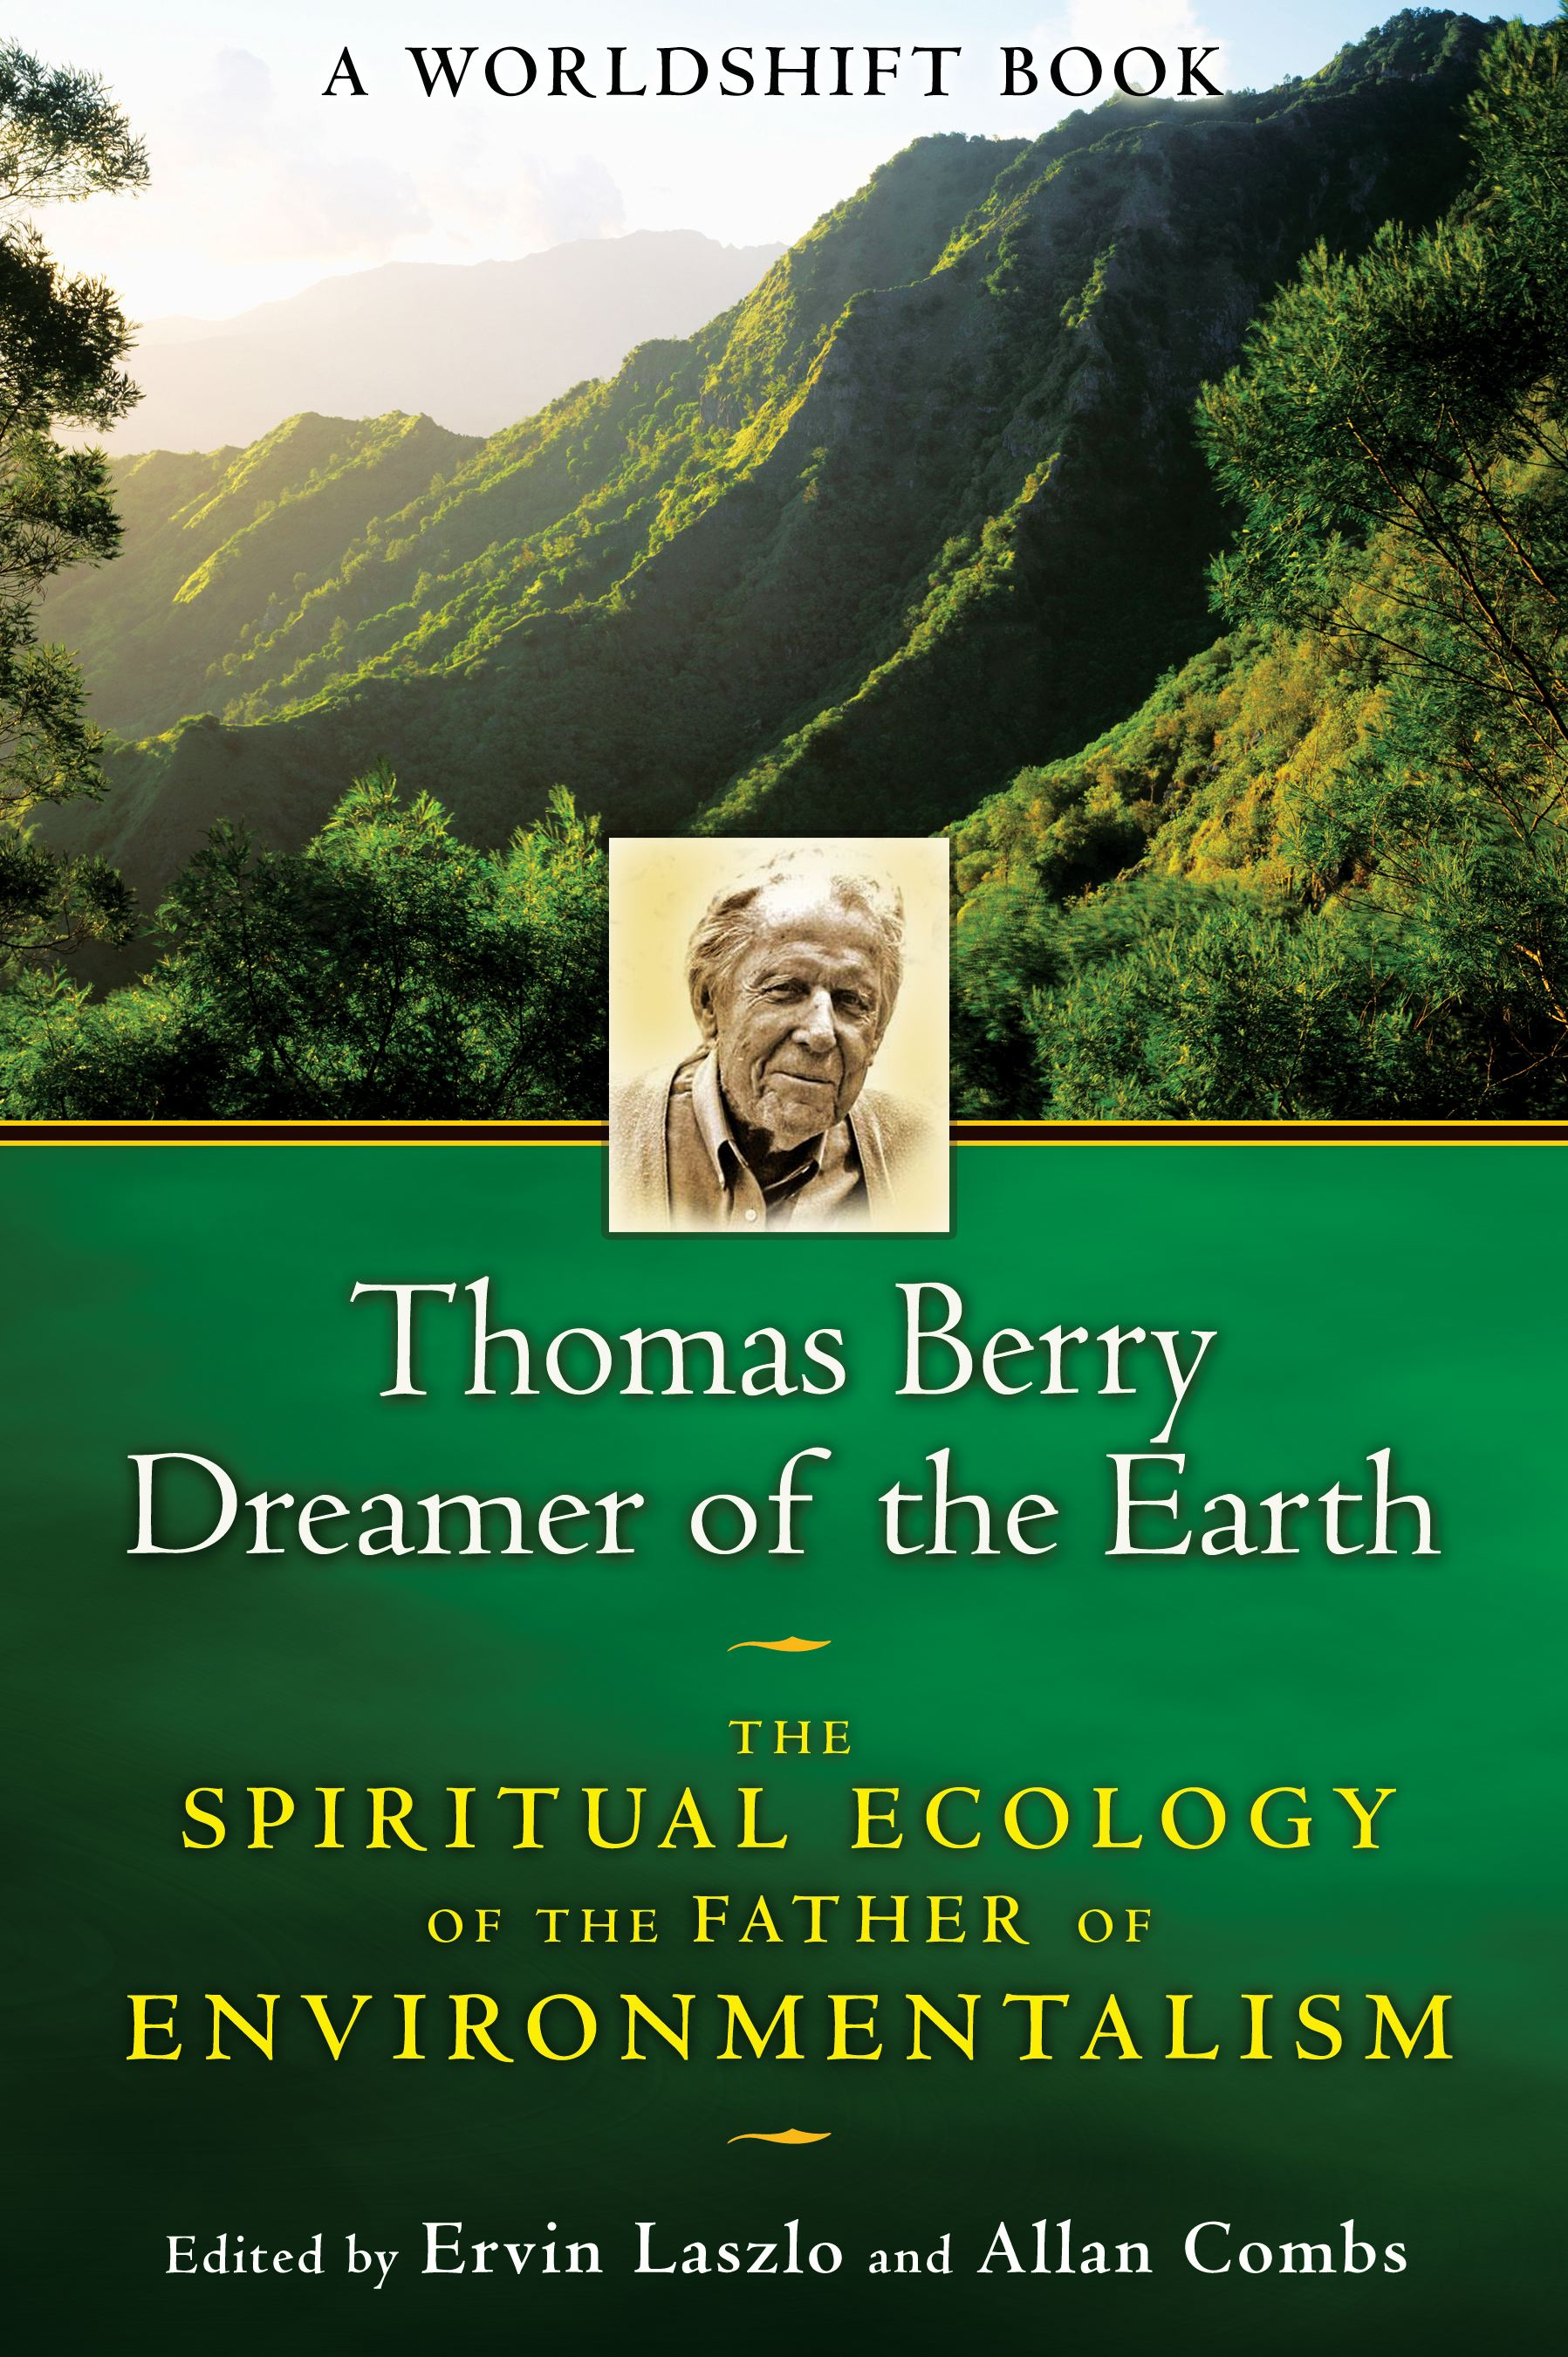 Thomas-berry-dreamer-of-the-earth-9781594773952_hr